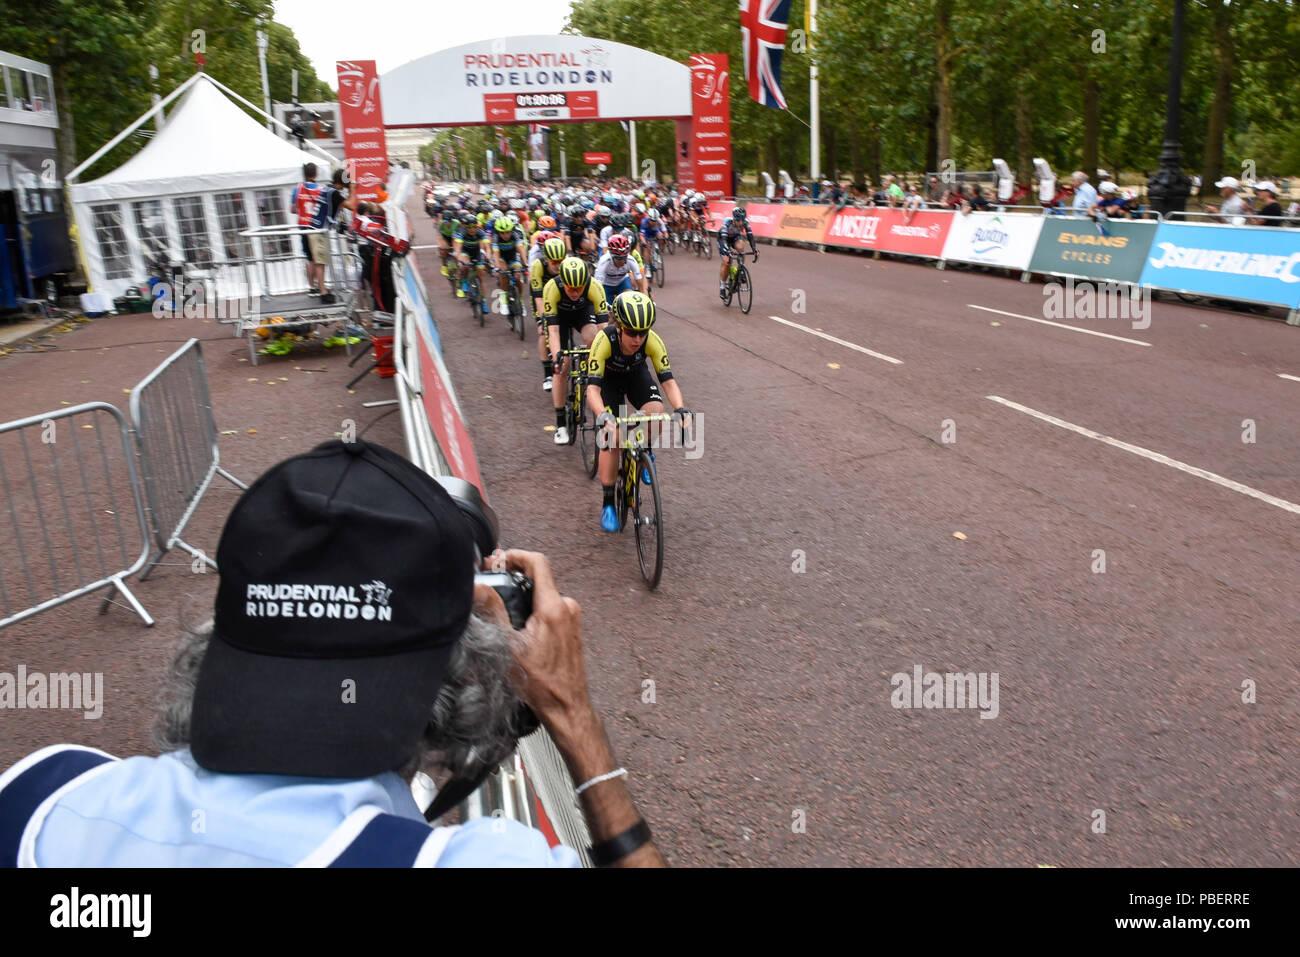 London, UK.  28 July 2018. Elite women riders take part in the Prudential RideLondon Classique riding 12 laps round a 5.4km circuit in central London, won by Kirsten Wild of Team Wiggle High5.  Ranked as one of the top women's UCI WorldTour events, prize money for the race is the highest ever for a women's one day race and features 9 of the top 10 teams from the Women's World Tour. (Editorial use only)  Credit: Stephen Chung / Alamy Live News Stock Photo